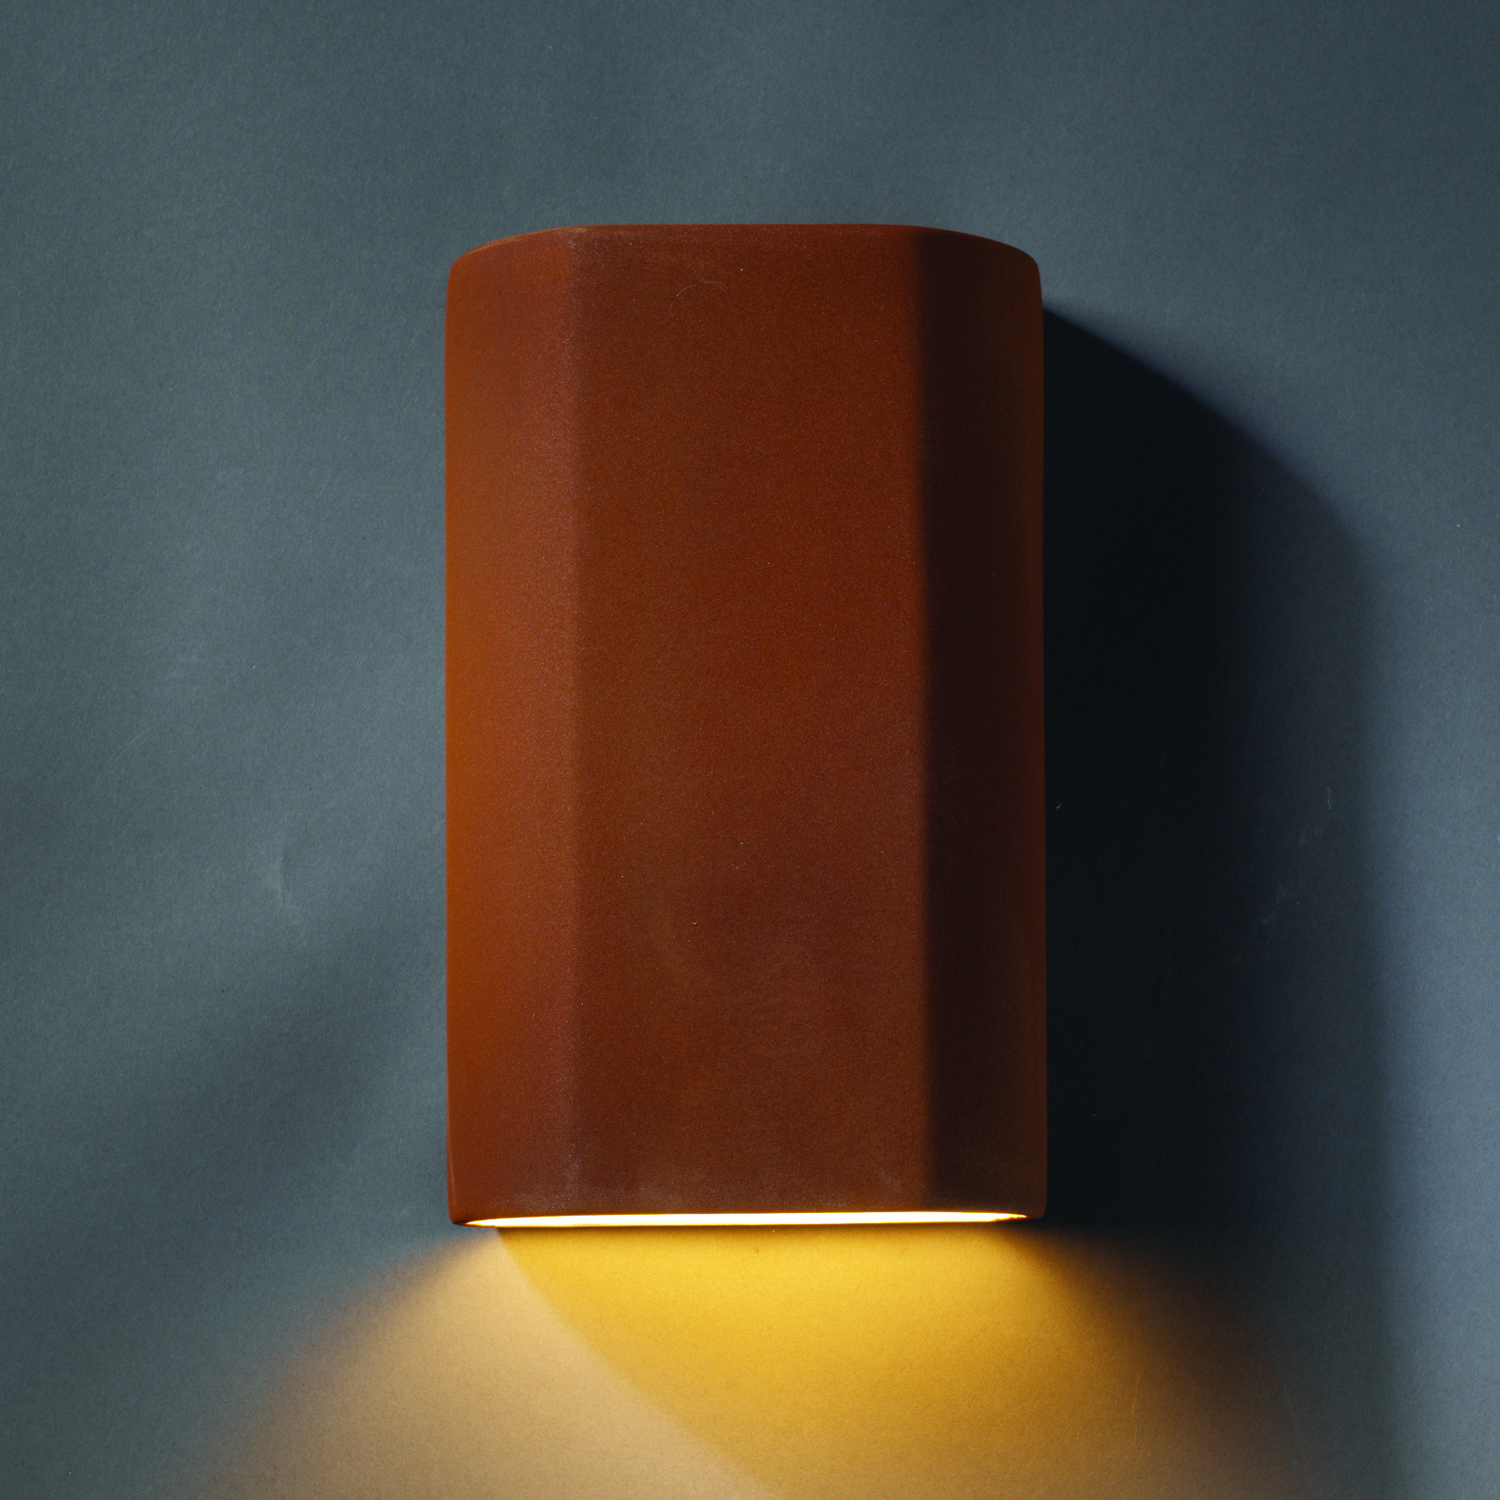 One Light Wall Sconce From The Ambiance Collection By Justice Designs Cer 5500w Rrst